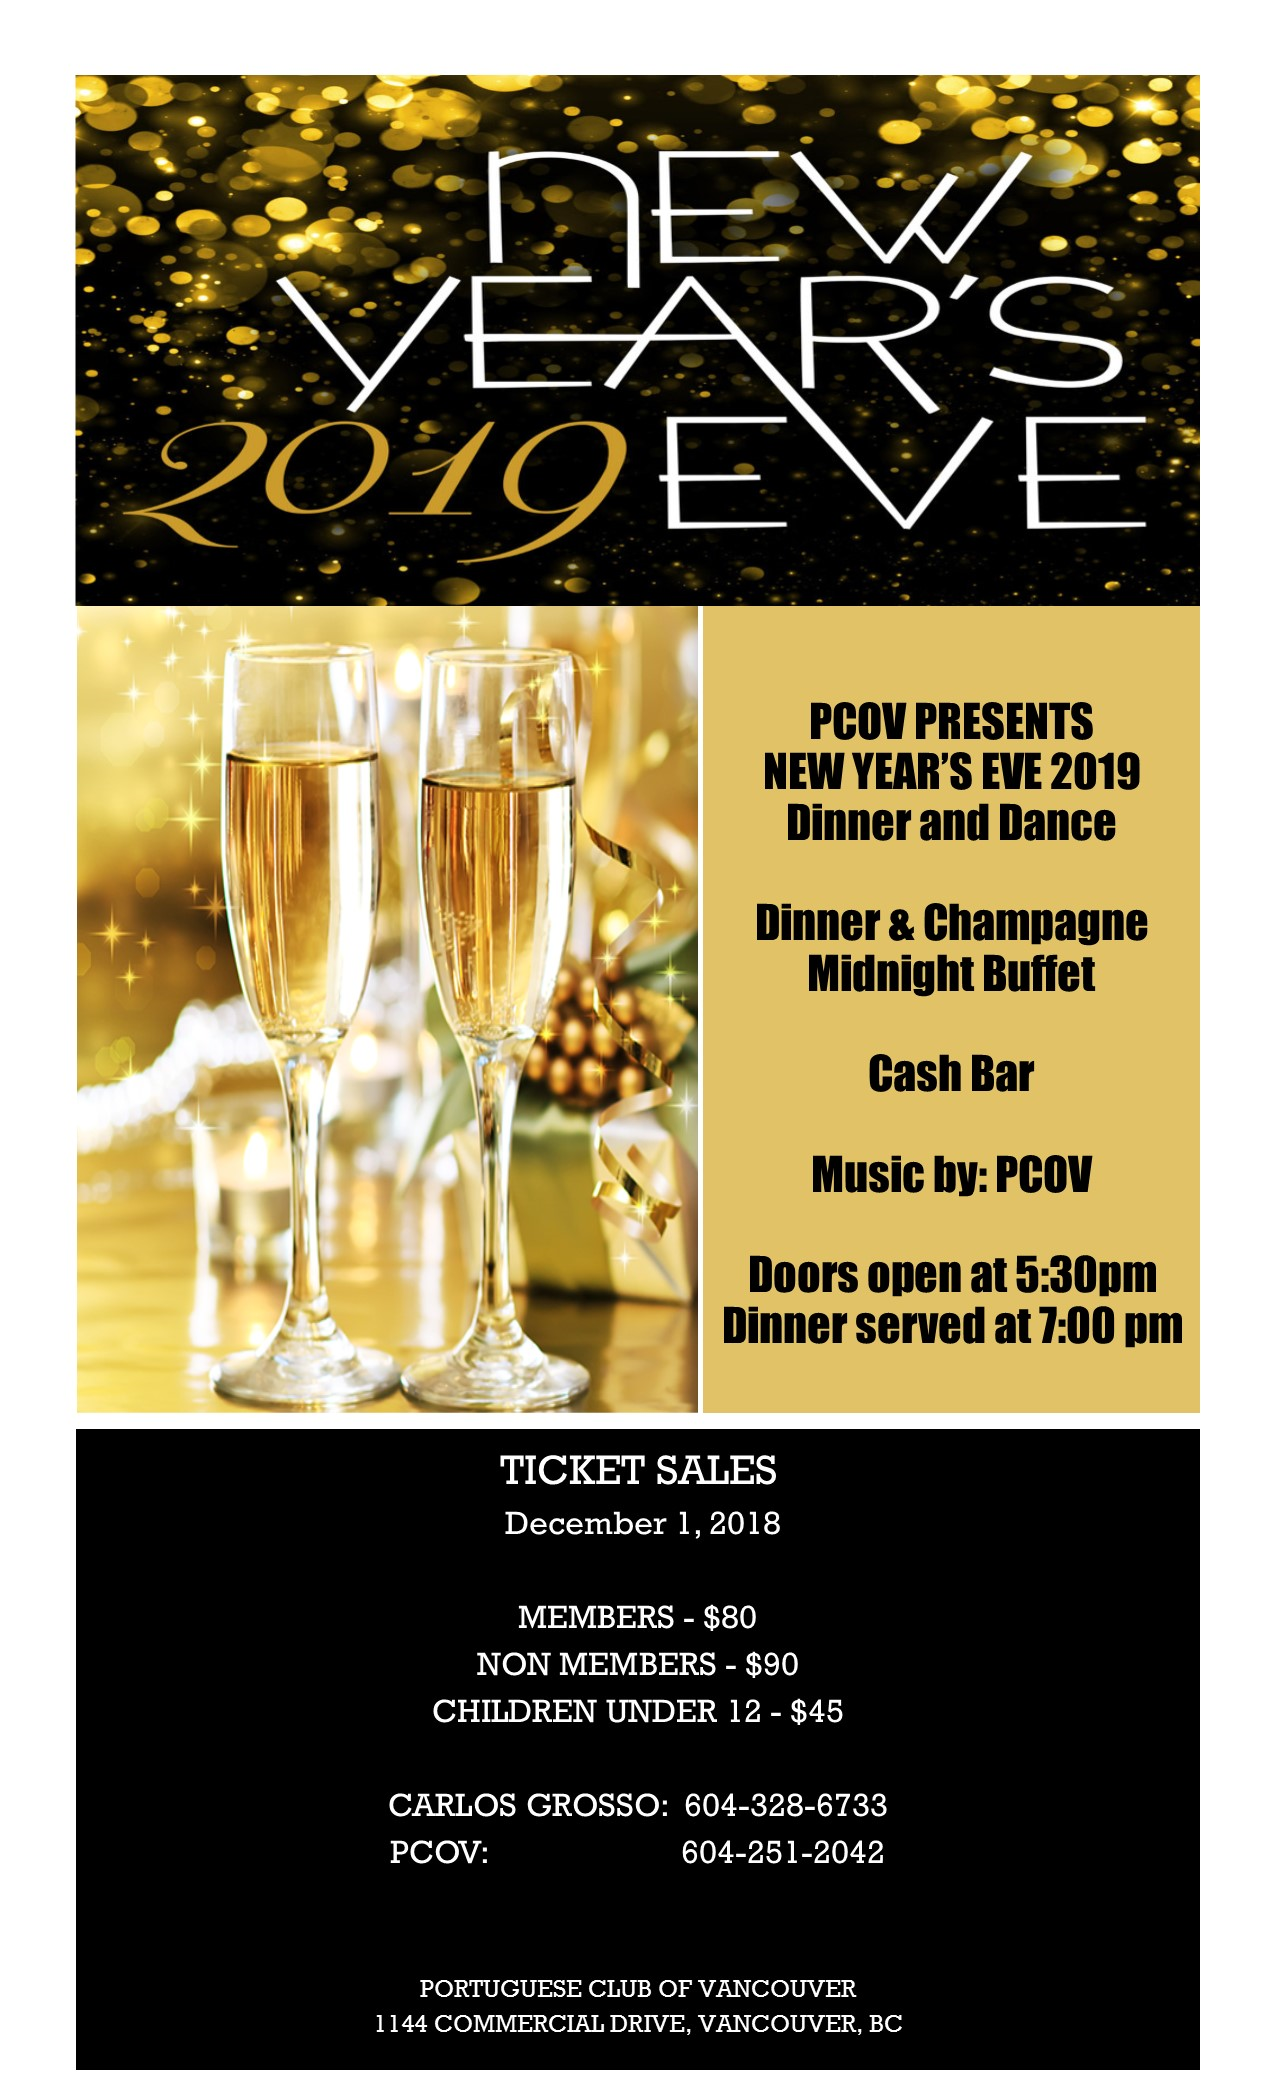 Portuguese Club of Vancouver, New Year's Eve 2019